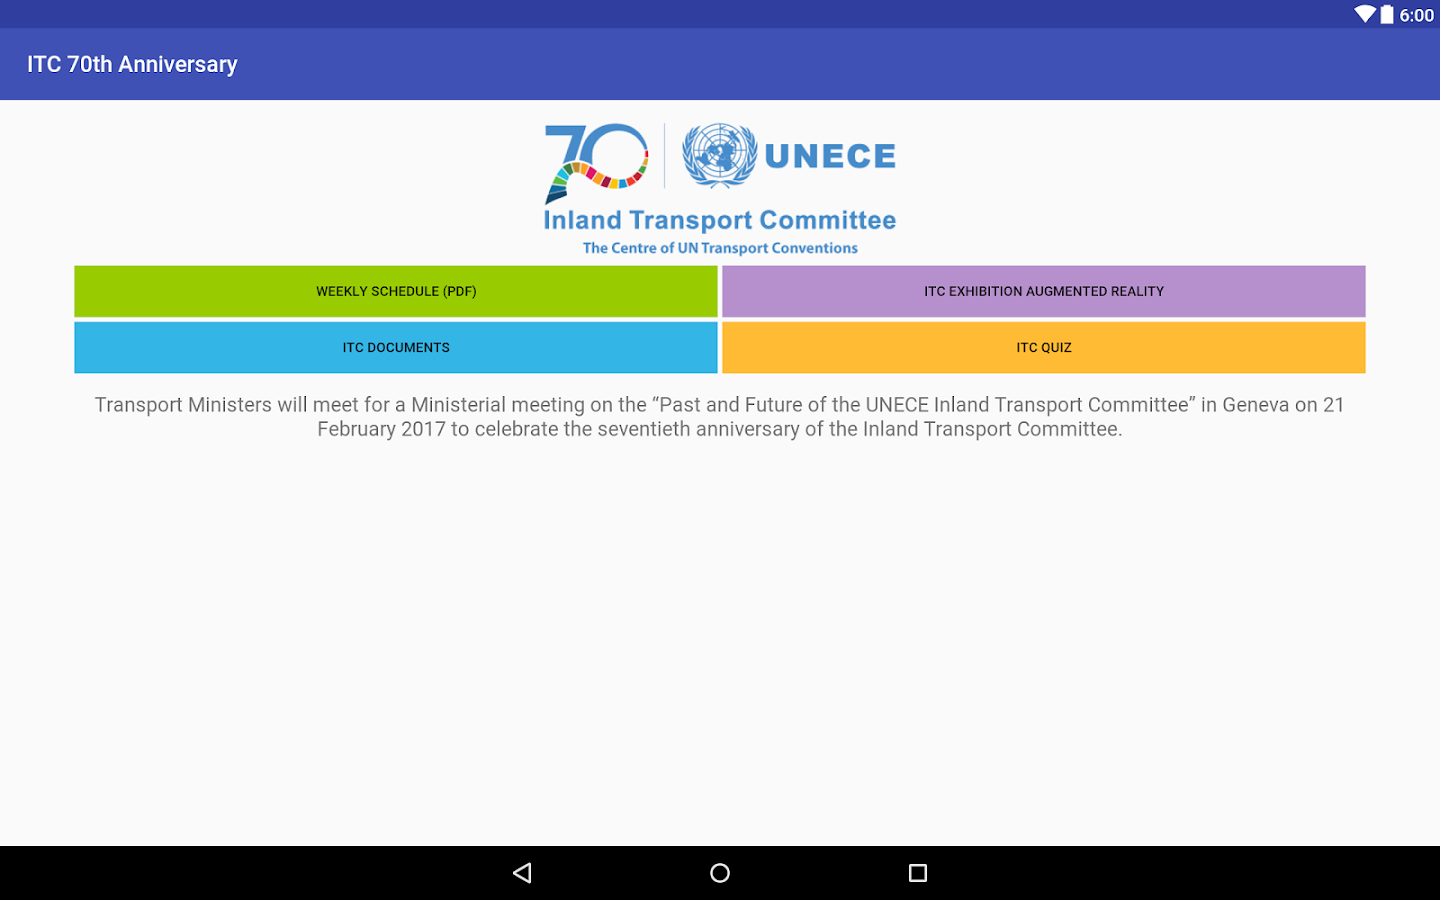 UNECE 70th ITC Anniversary- screenshot